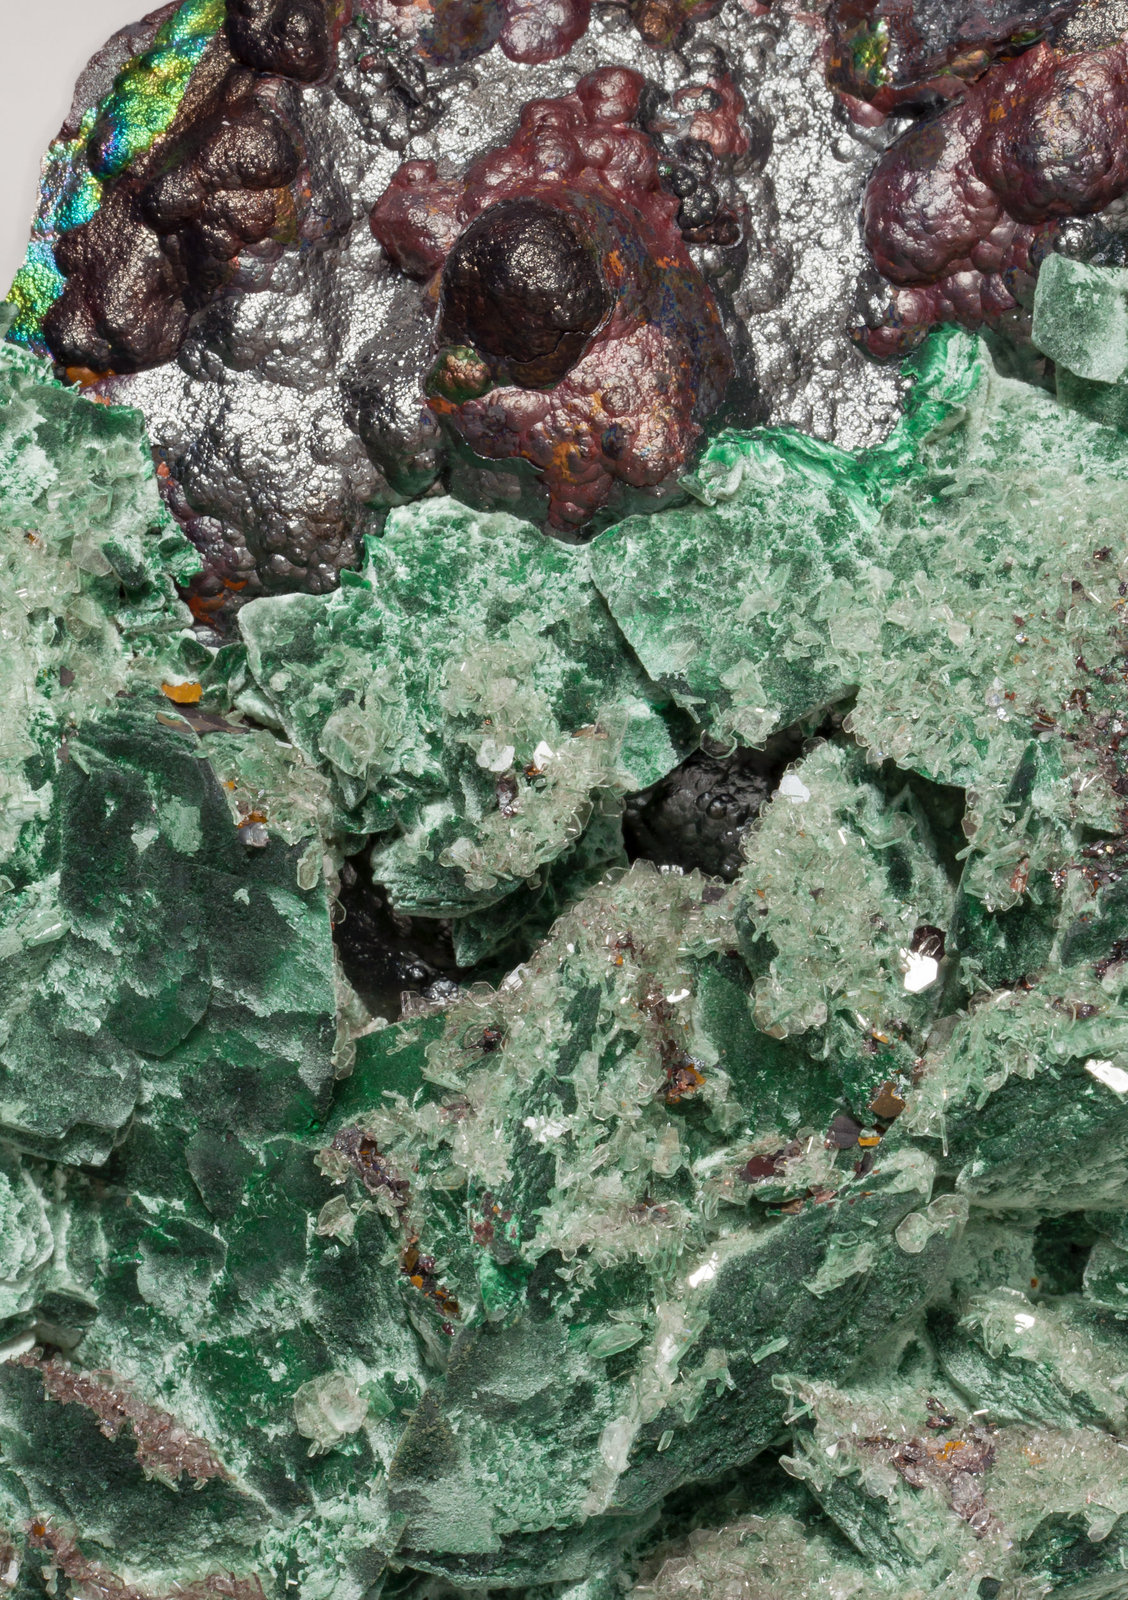 specimens/s_imagesAE7/Malachite-TE22AE7d.jpg